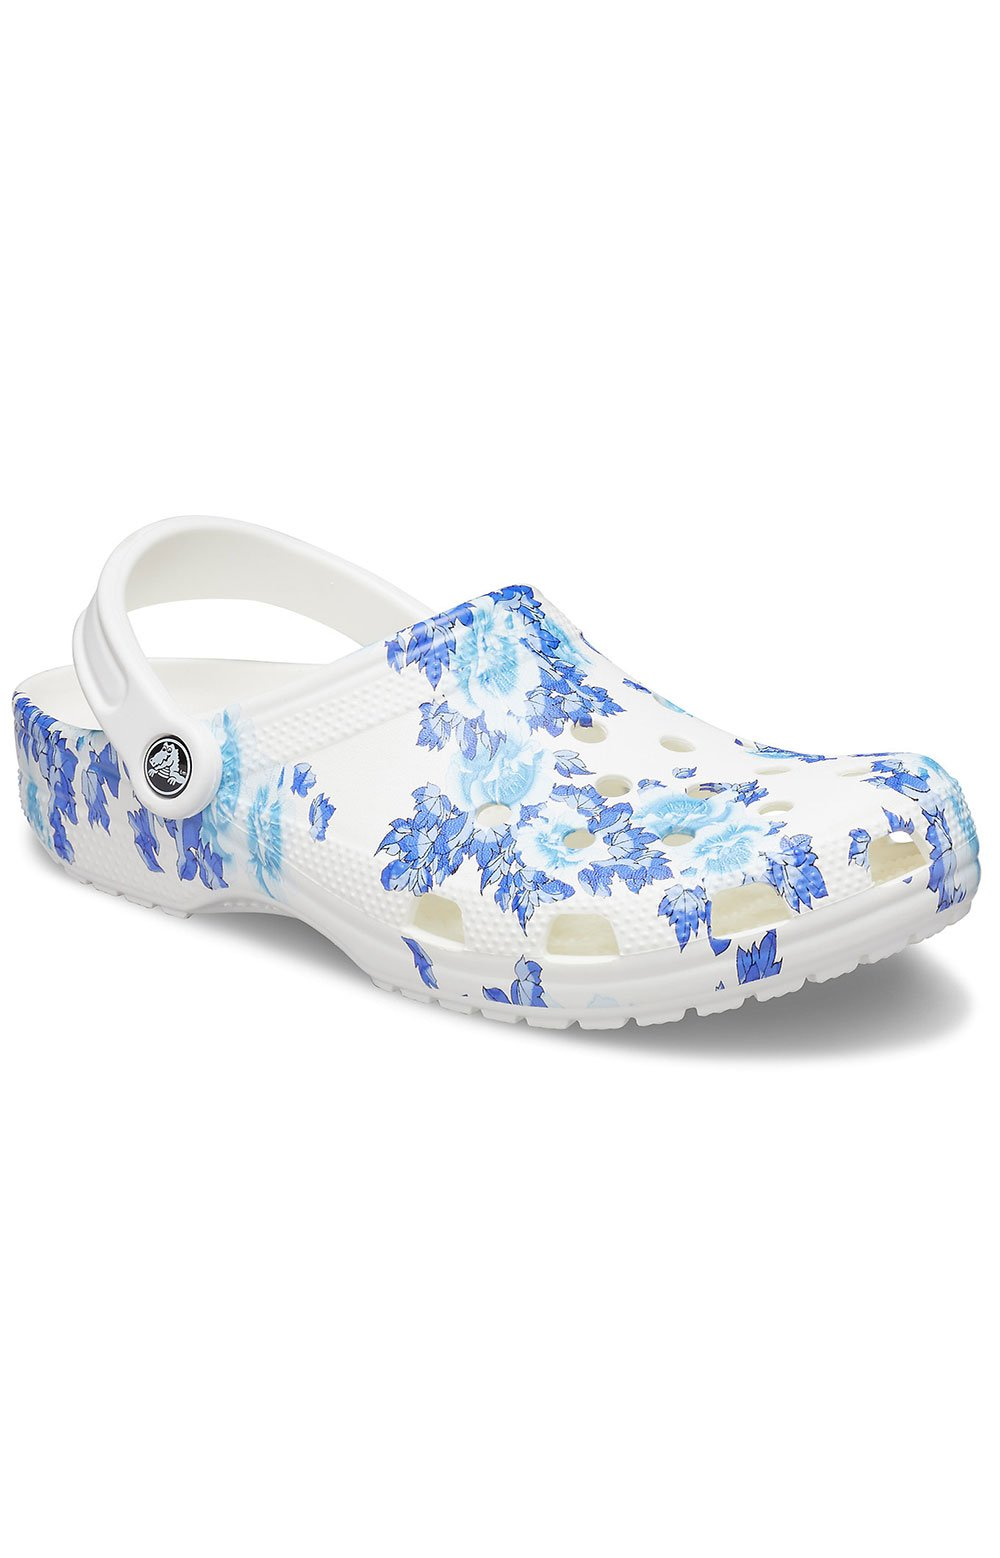 Classic Printed Floral Clogs - White/Blue